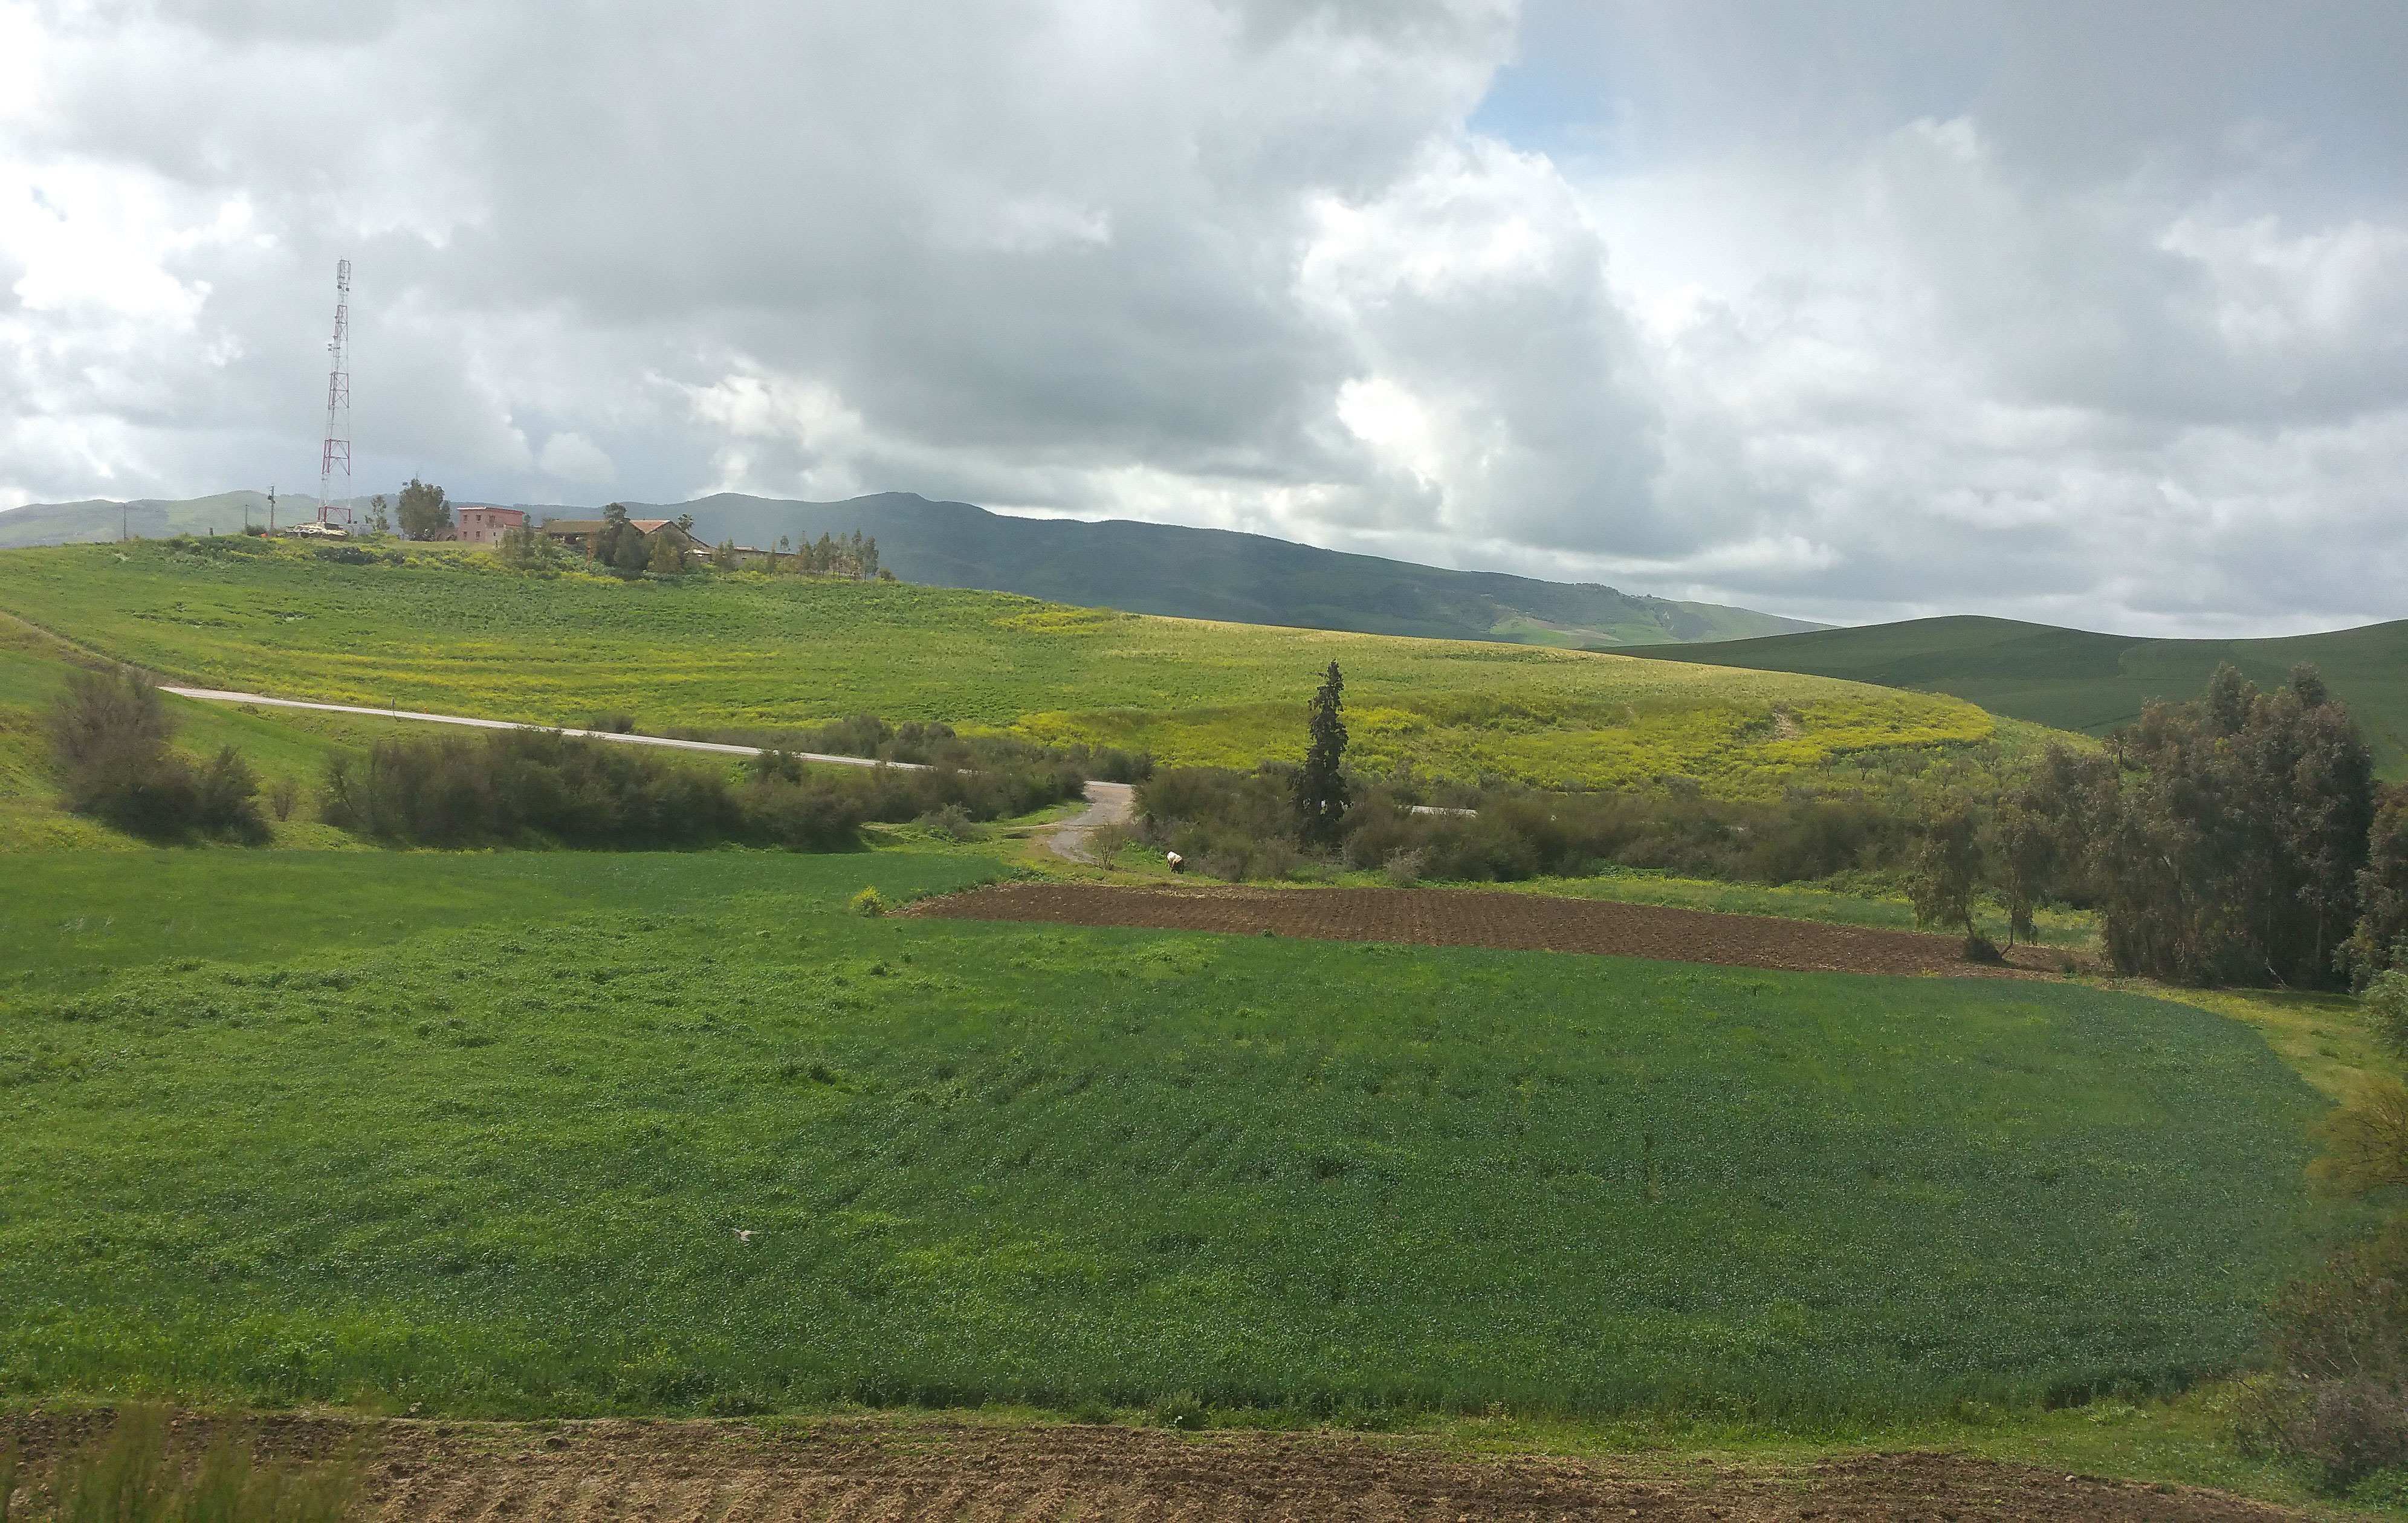 Favourable season. An agricultural land in Meknes region. (Saad Guerraoui)